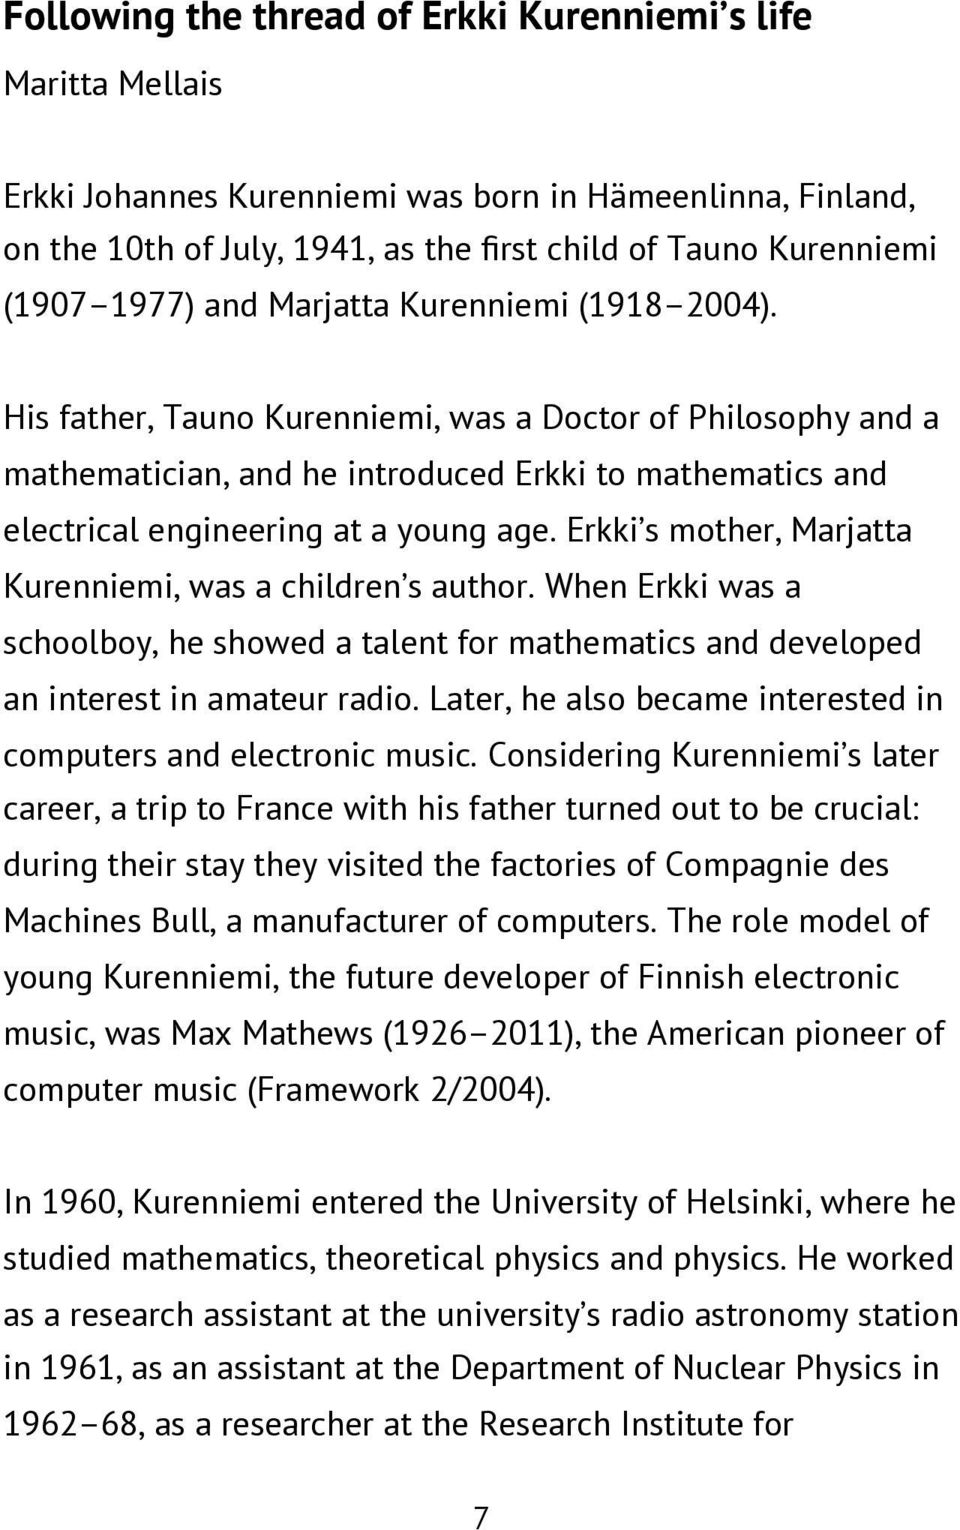 His father, Tauno Kurenniemi, was a Doctor of Philosophy and a mathematician, and he introduced Erkki to mathematics and electrical engineering at a young age.